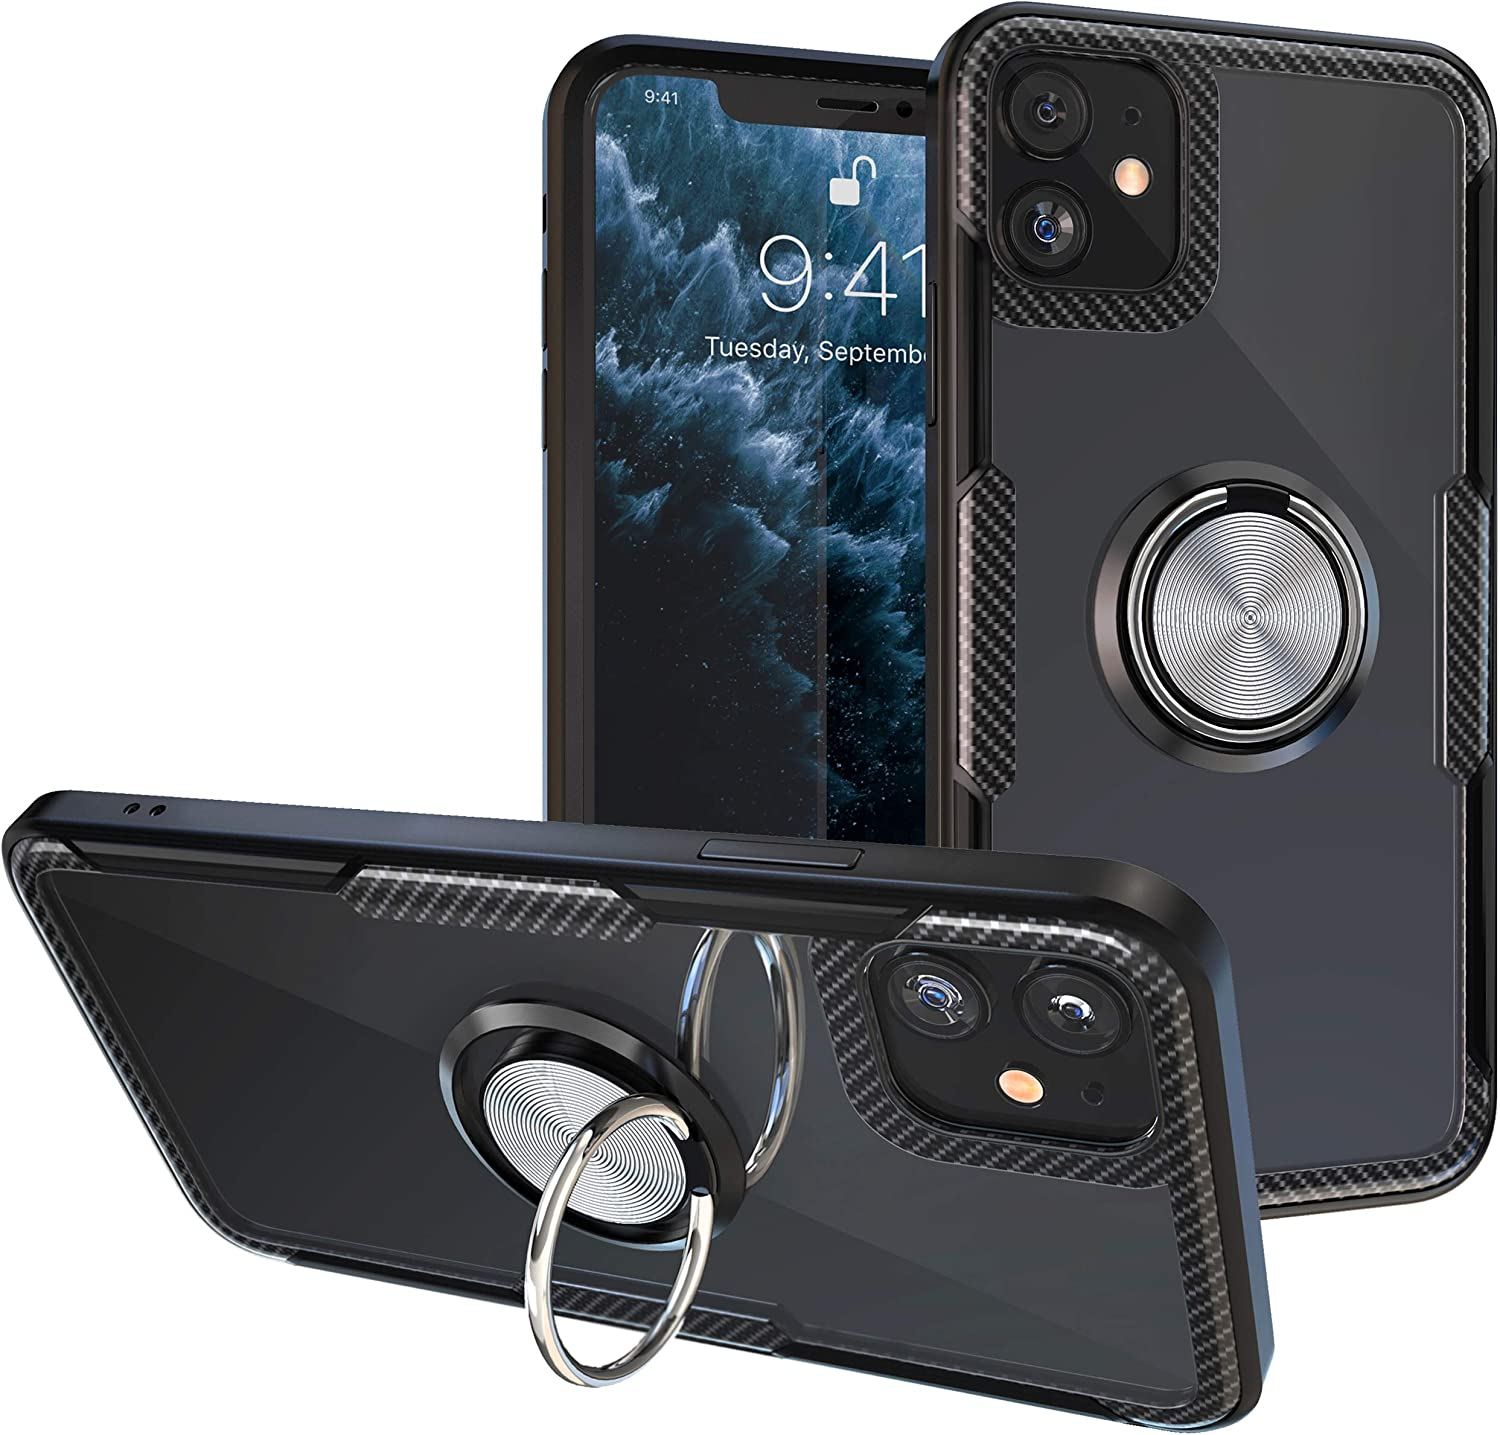 iPhone 11 Case | Transparent Crystal Clear Cover | Carbon Fiber Trim & Rubber Bumper | 360° Rotating Magnetic Finger Ring | Kickstand | Compatible with Apple iPhone 11 - Black